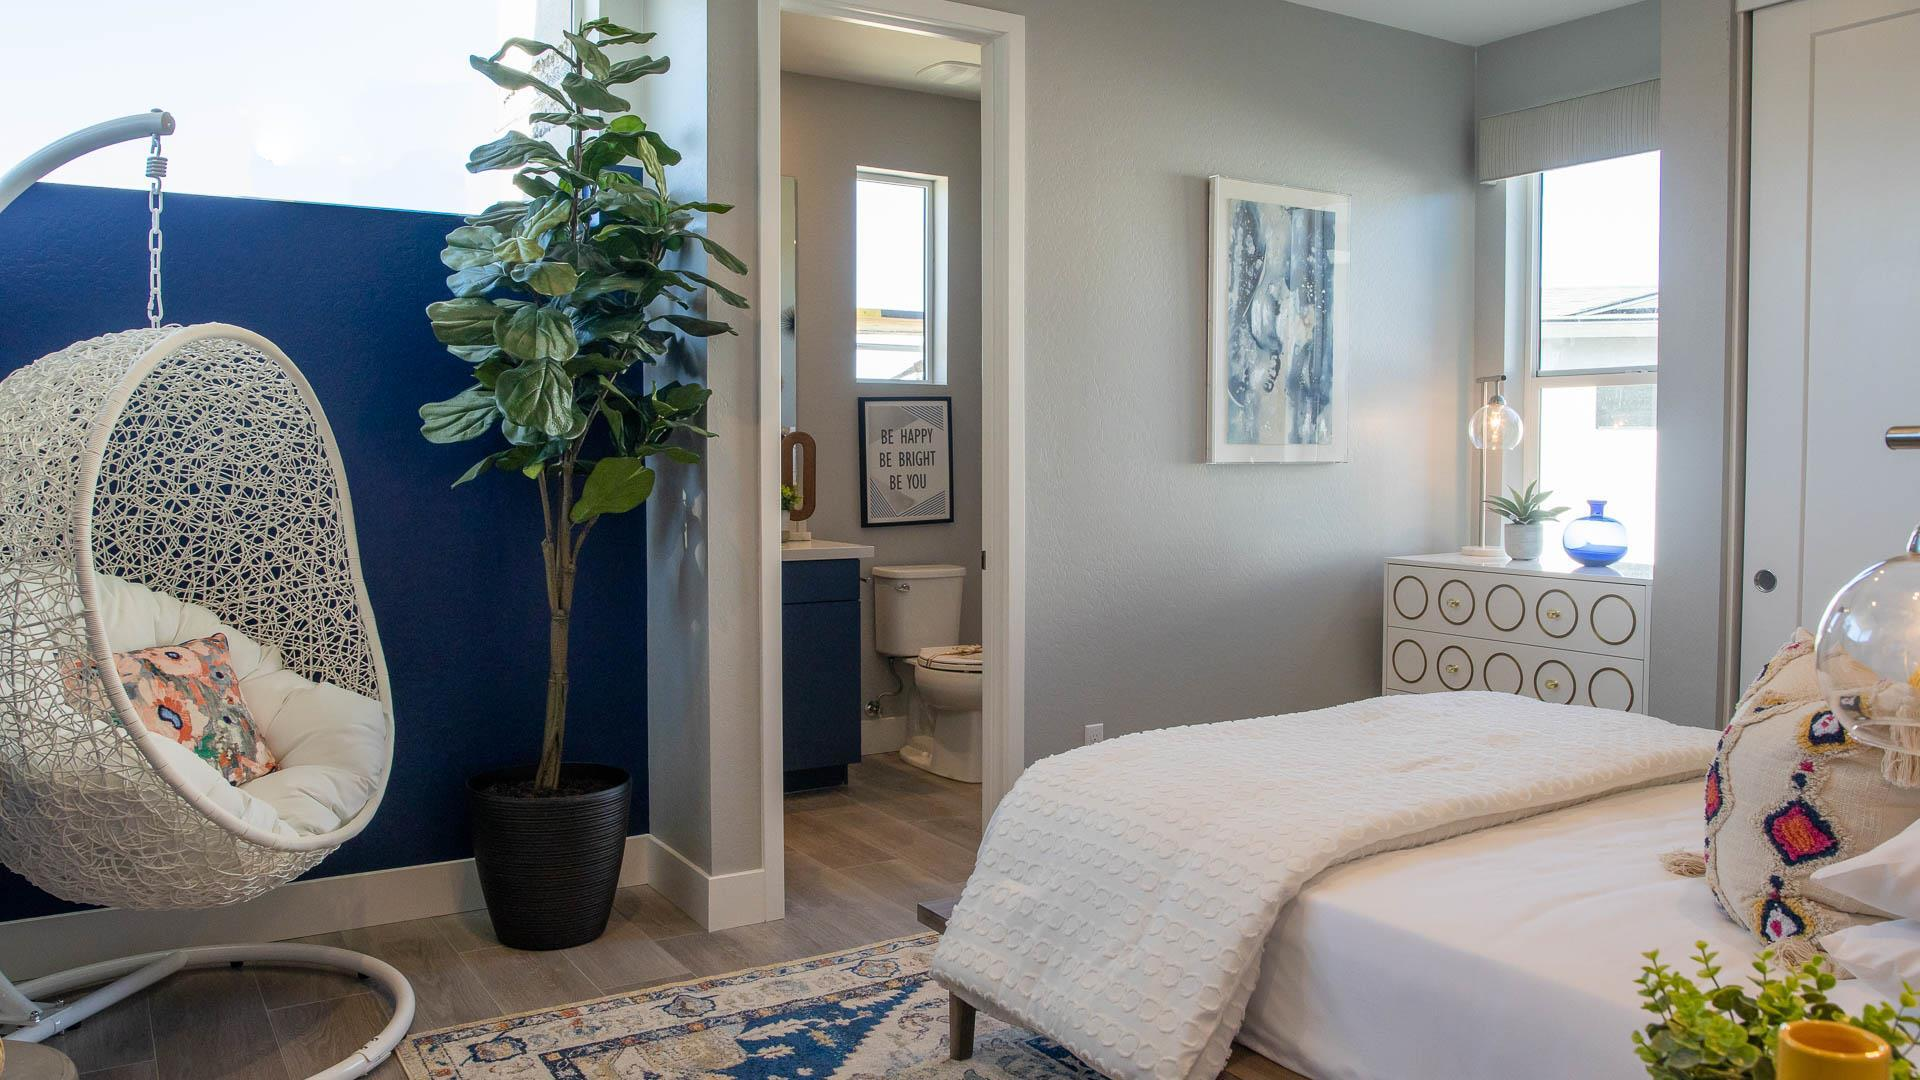 Bedroom featured in the J606 By Mandalay Homes in Prescott, AZ